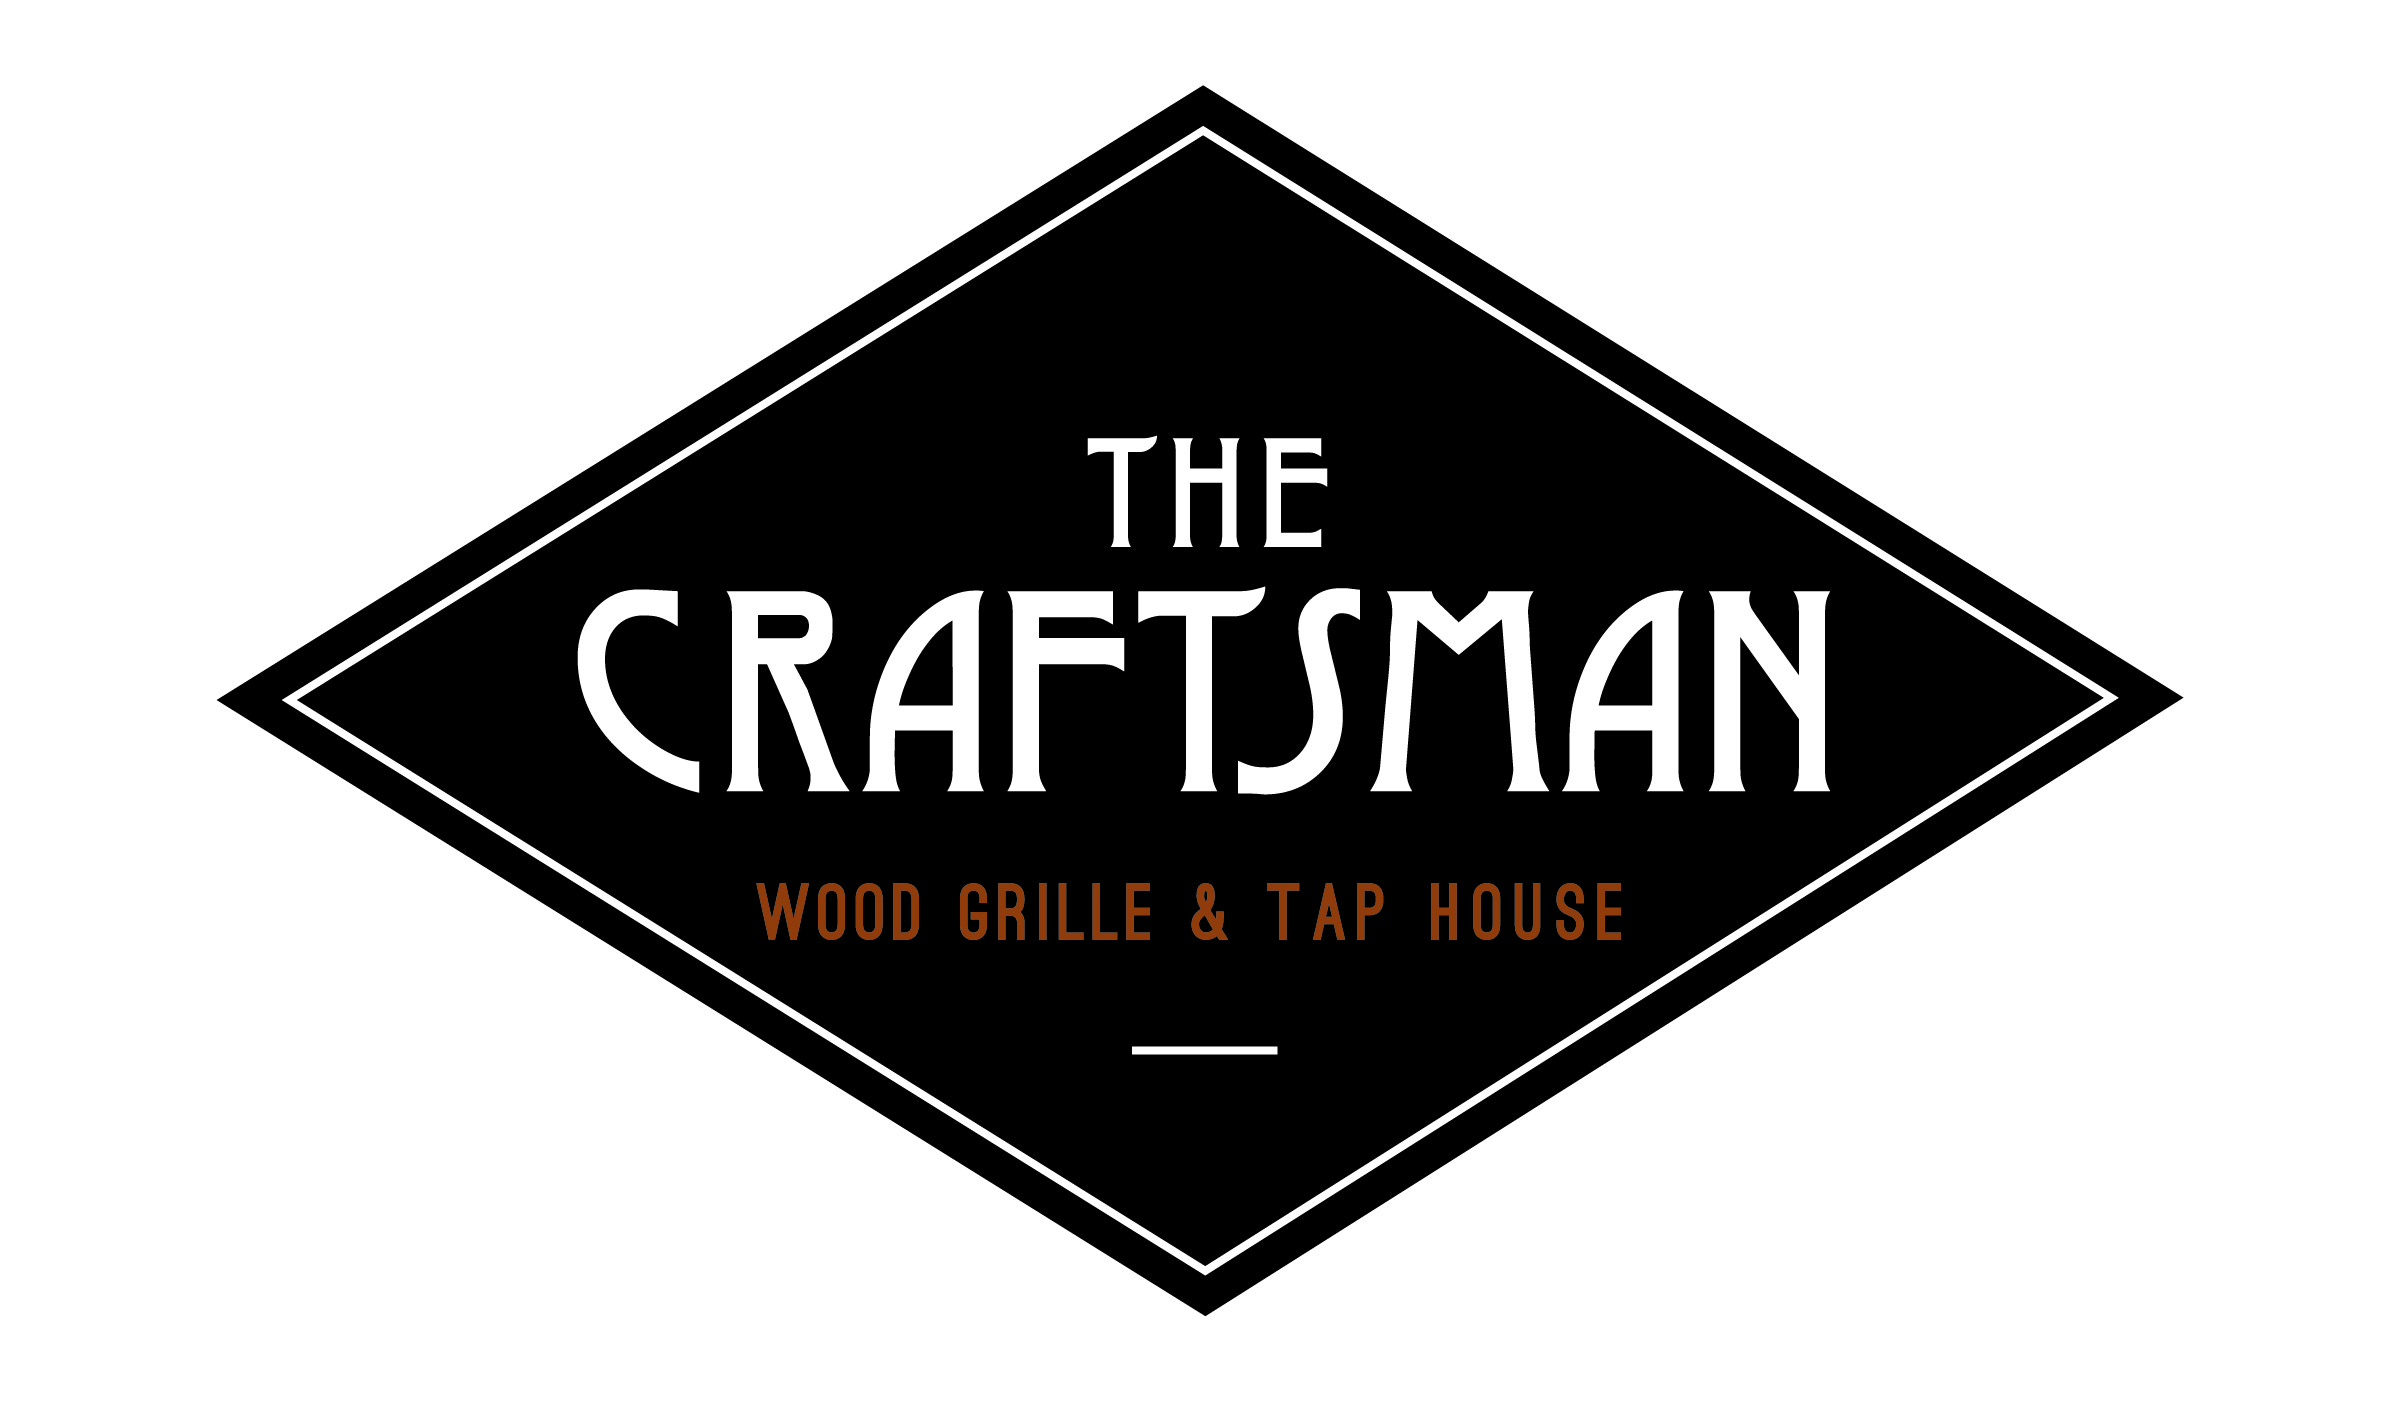 Logo for The Craftsman Wood Grille & Tap House